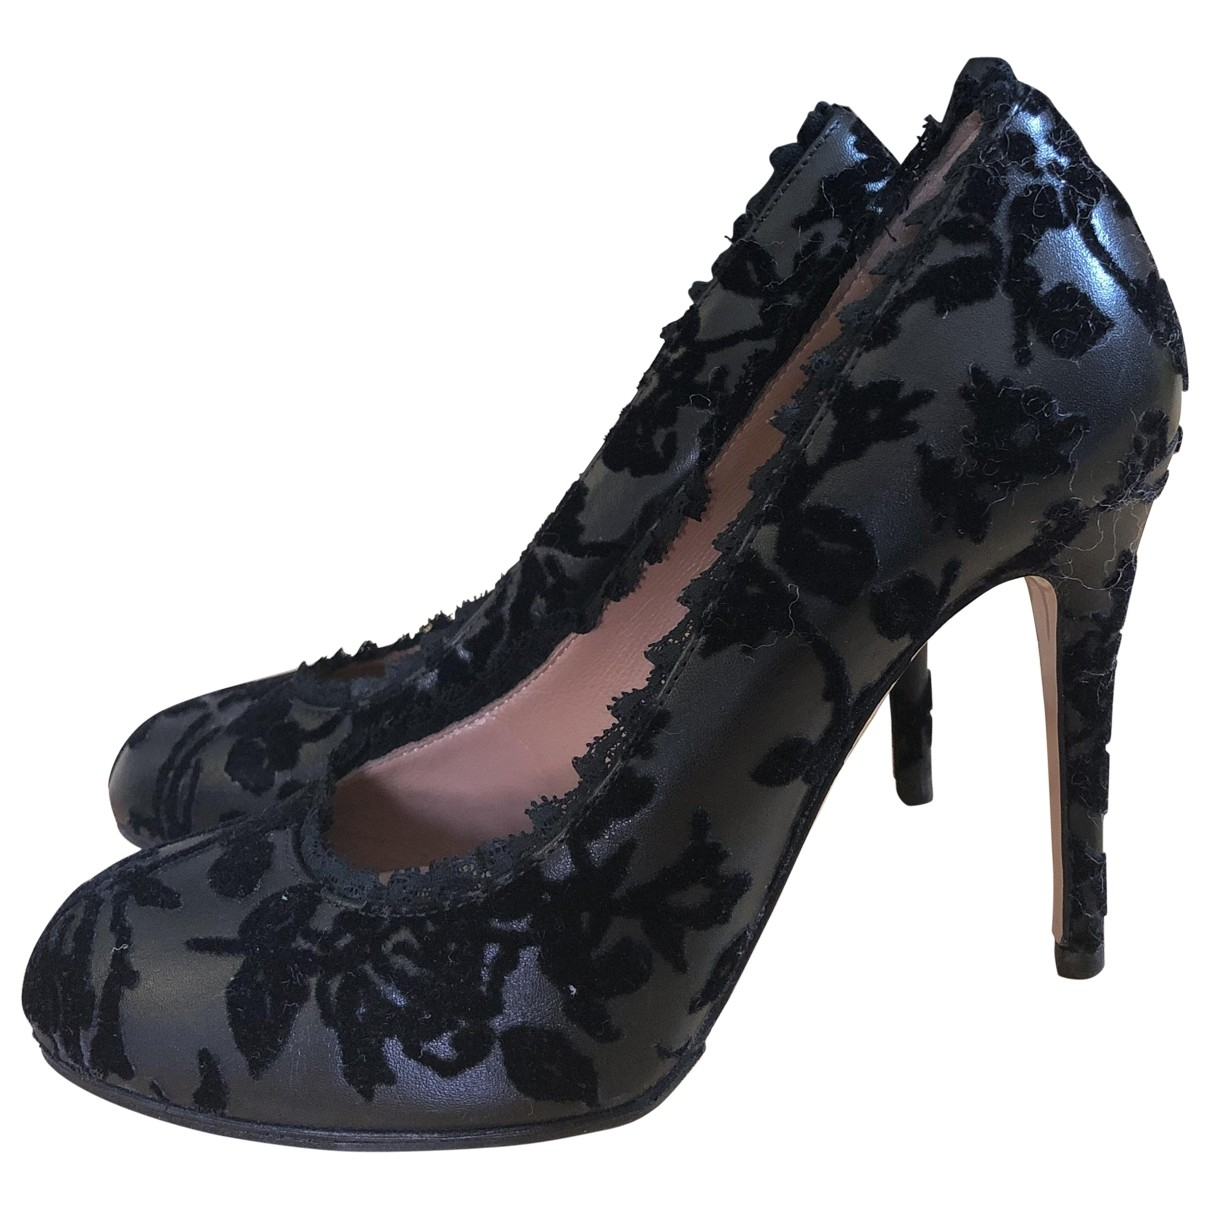 Red Valentino Garavani \N Black Leather Heels for Women 36.5 EU